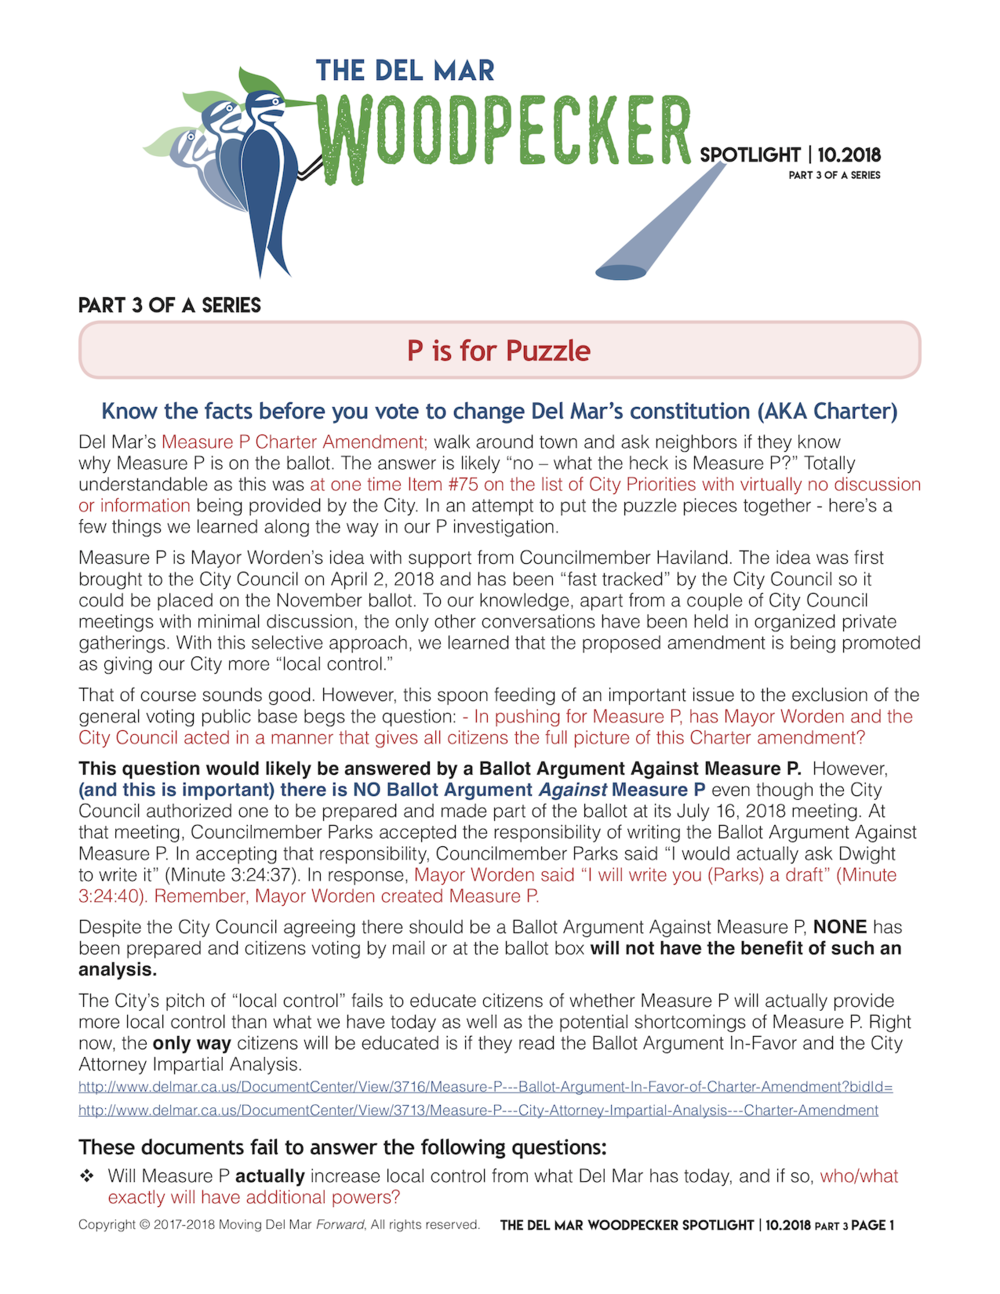 """Spotlight 10/2018 Part 3 of a Series - """"Know the facts before you vote to change Del Mar's constitution (AKA Charter) - Measure P P is for Puzzle"""""""